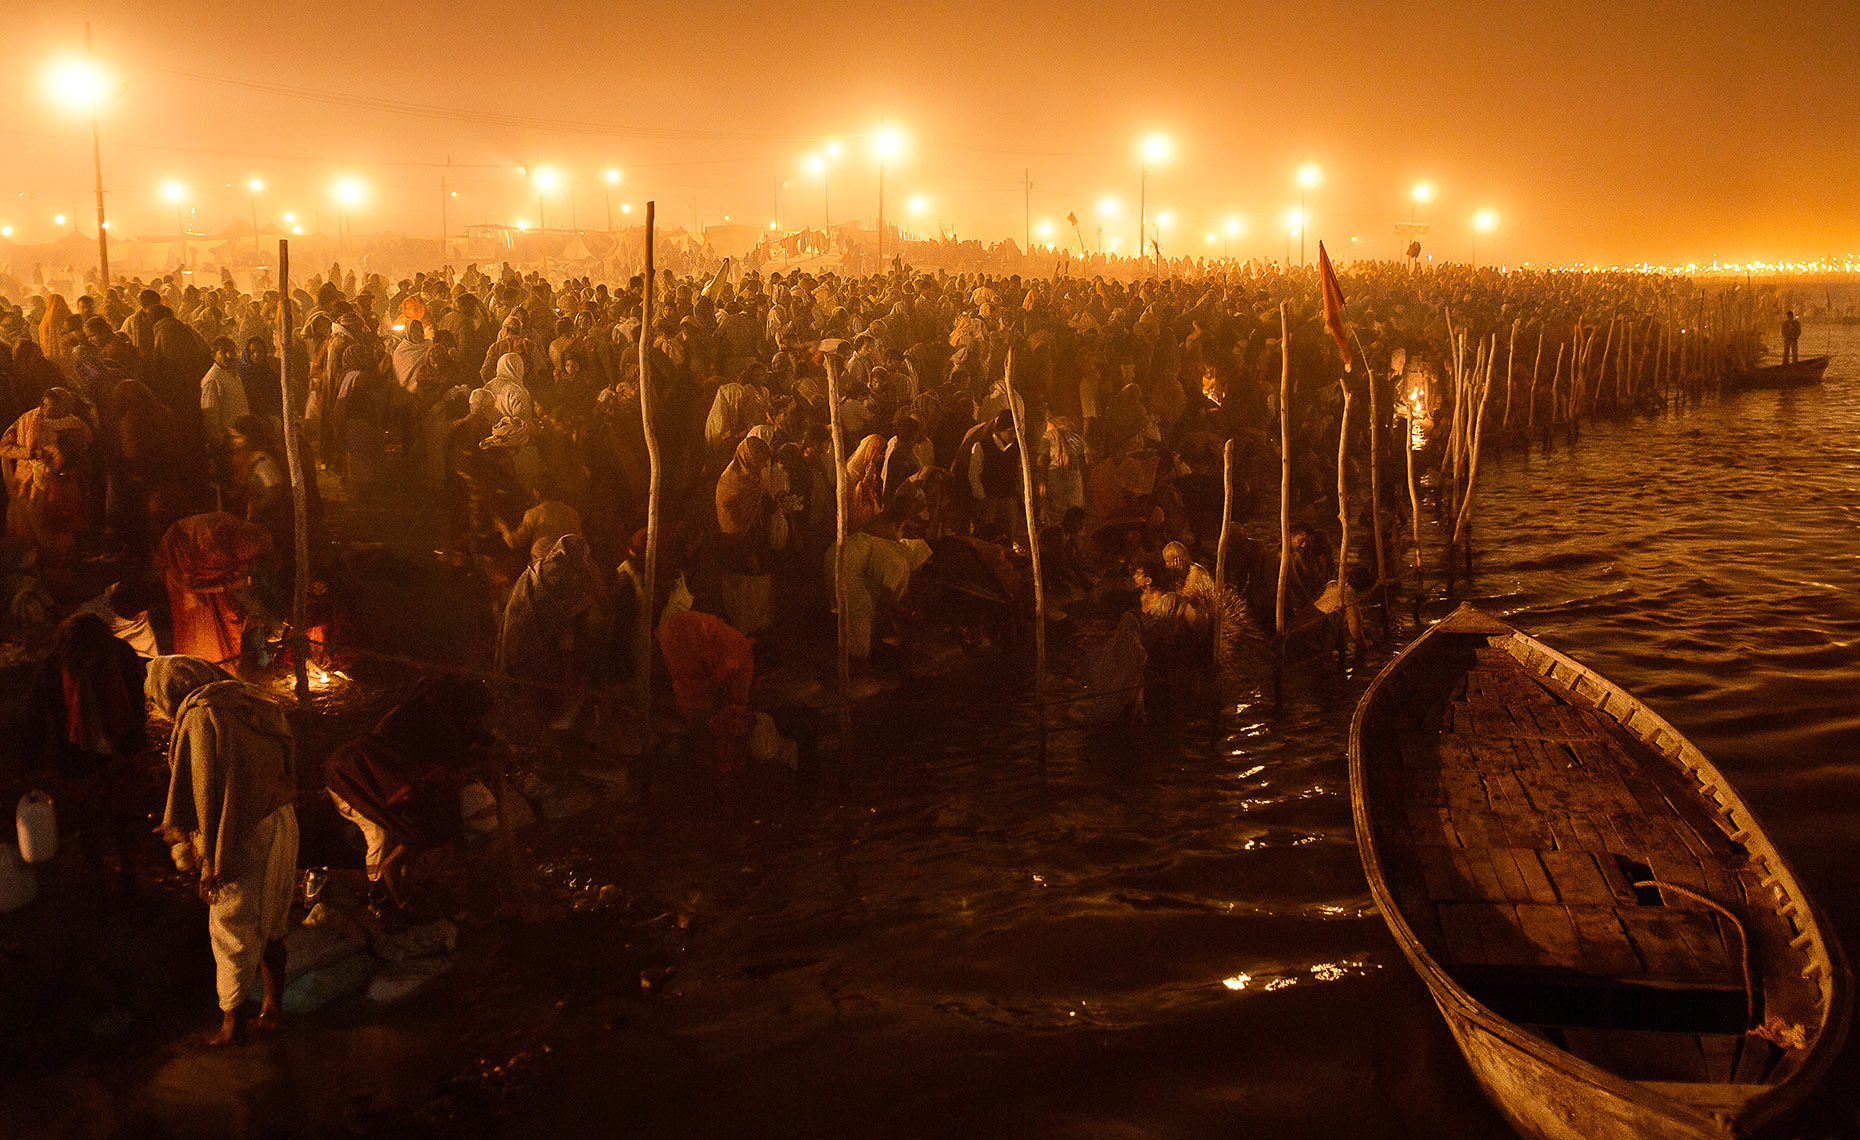 millions of Hindu pilgrims at Ganges River, Kumbh Mela, Allahabad, India Photo © Konstantino Hatzisarros 2010